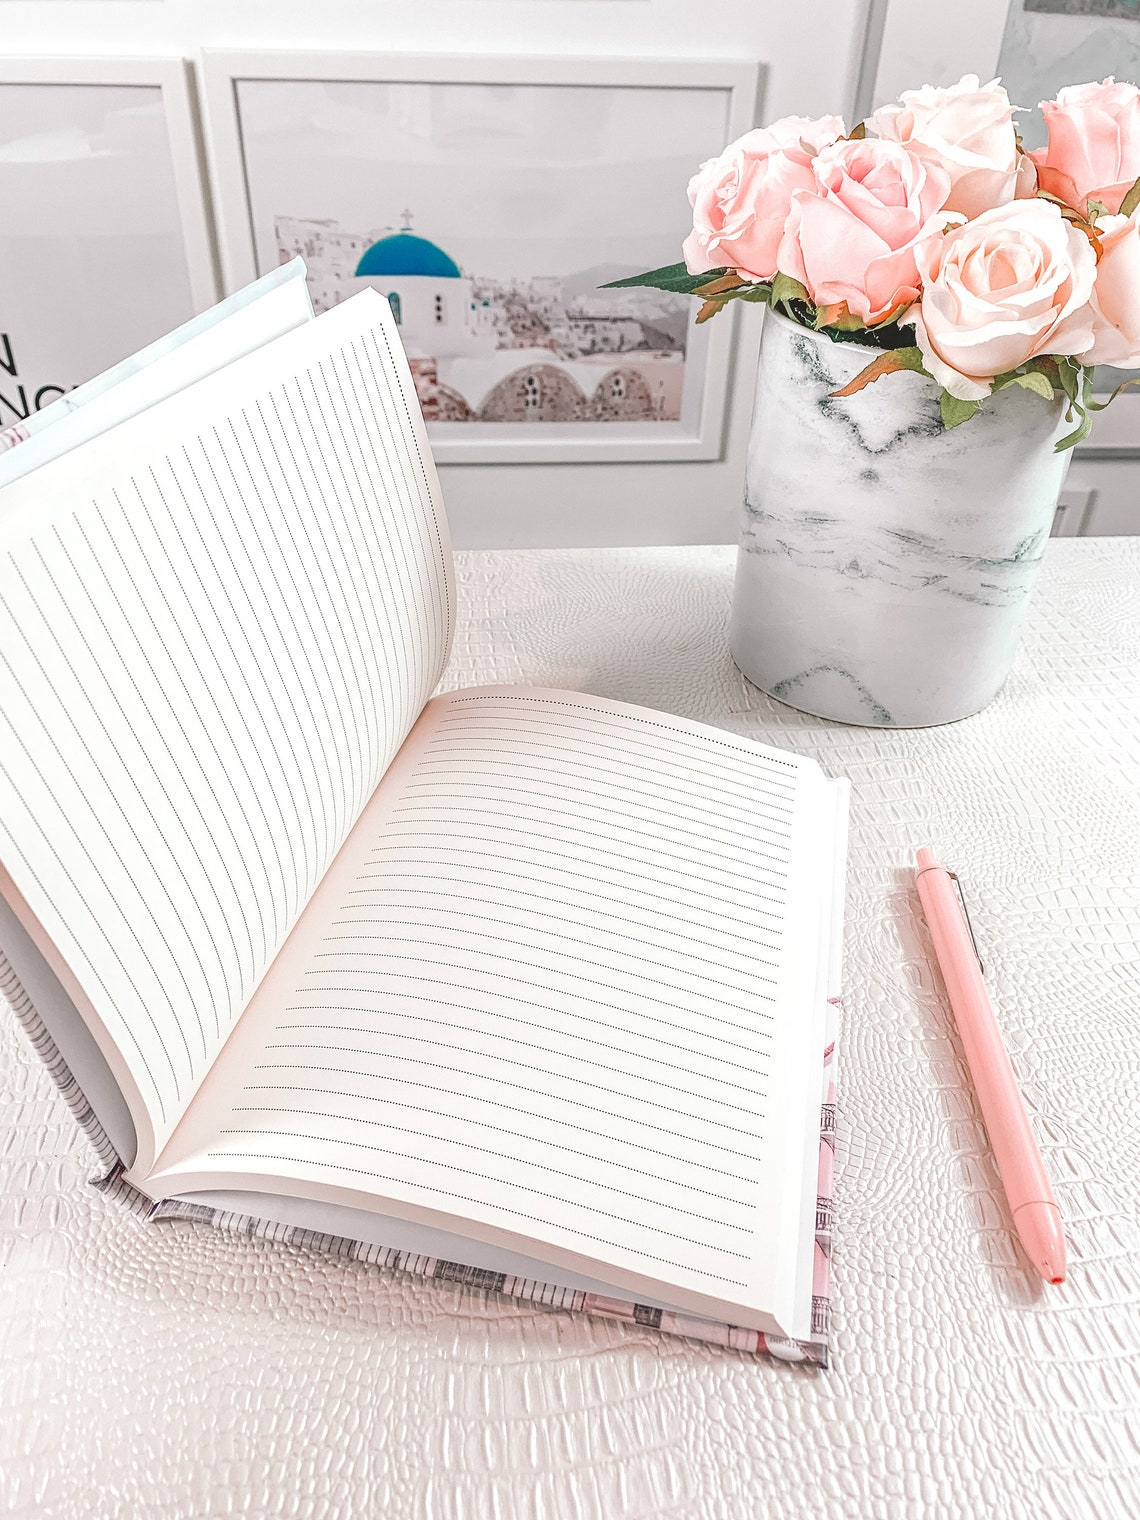 Pastel Pink Floral Journal College Ruled Hardcover Notebook image 2